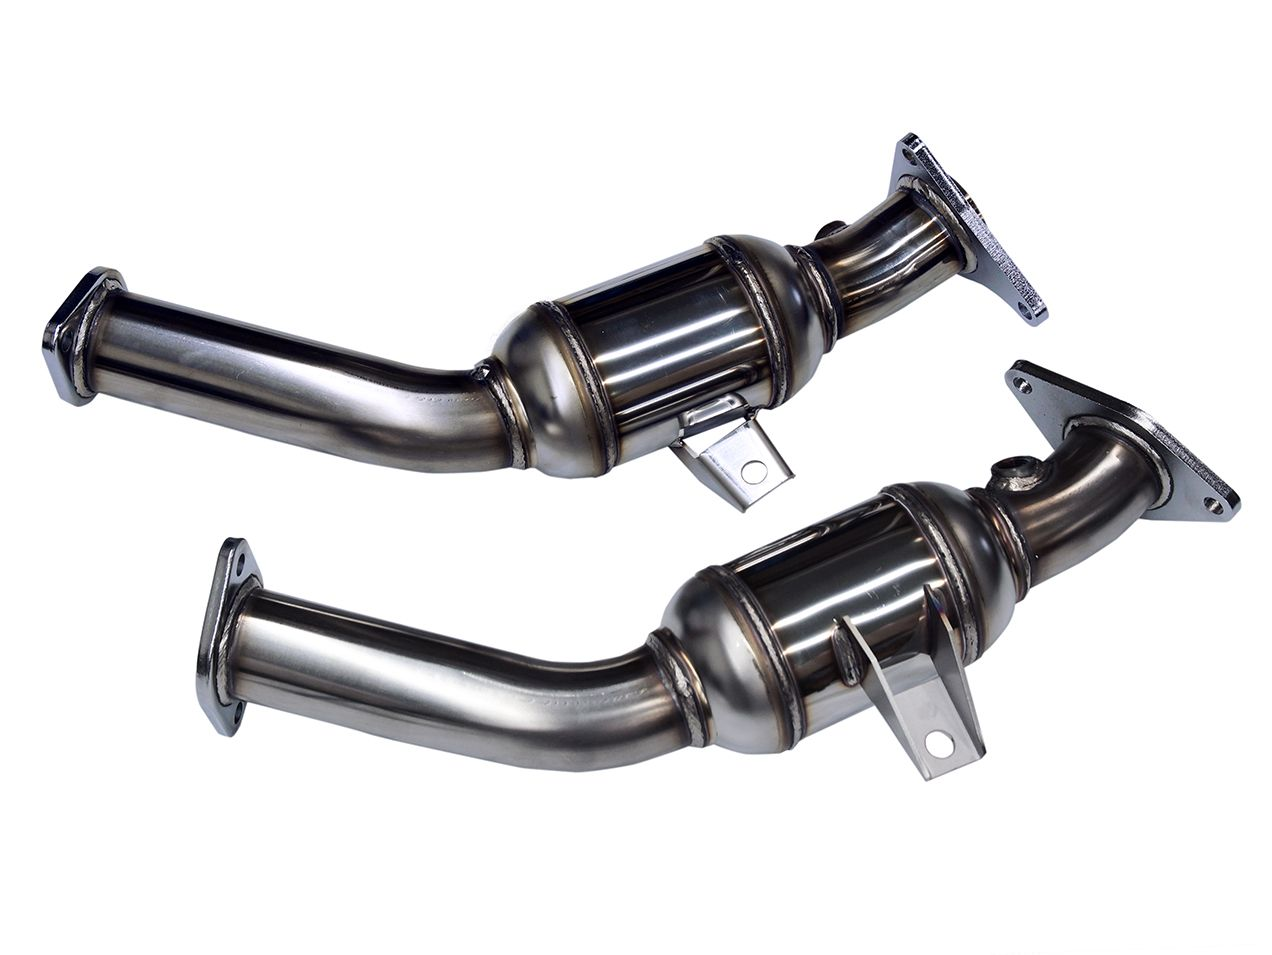 "HKS Stainless Steel Lower Downpipes, 2.5"" Resonated - Infiniti Q50 / Q60 3.0T VR30DDTT - 3 LEFT IN STOCK!!!"